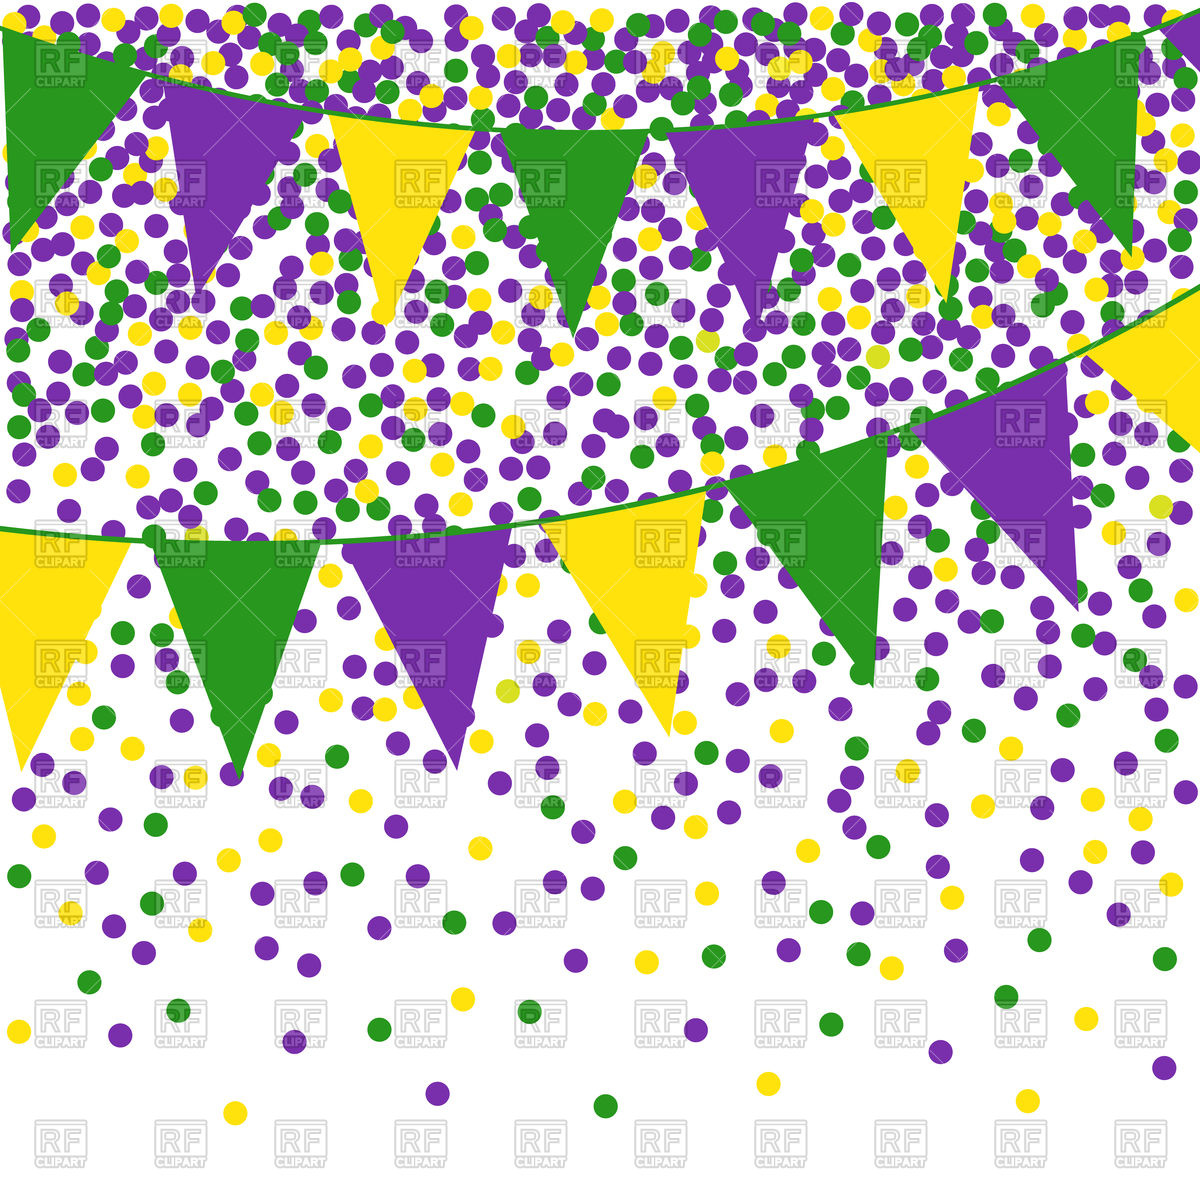 hight resolution of mardi gras clipart flag bunting background with confetti png free stock